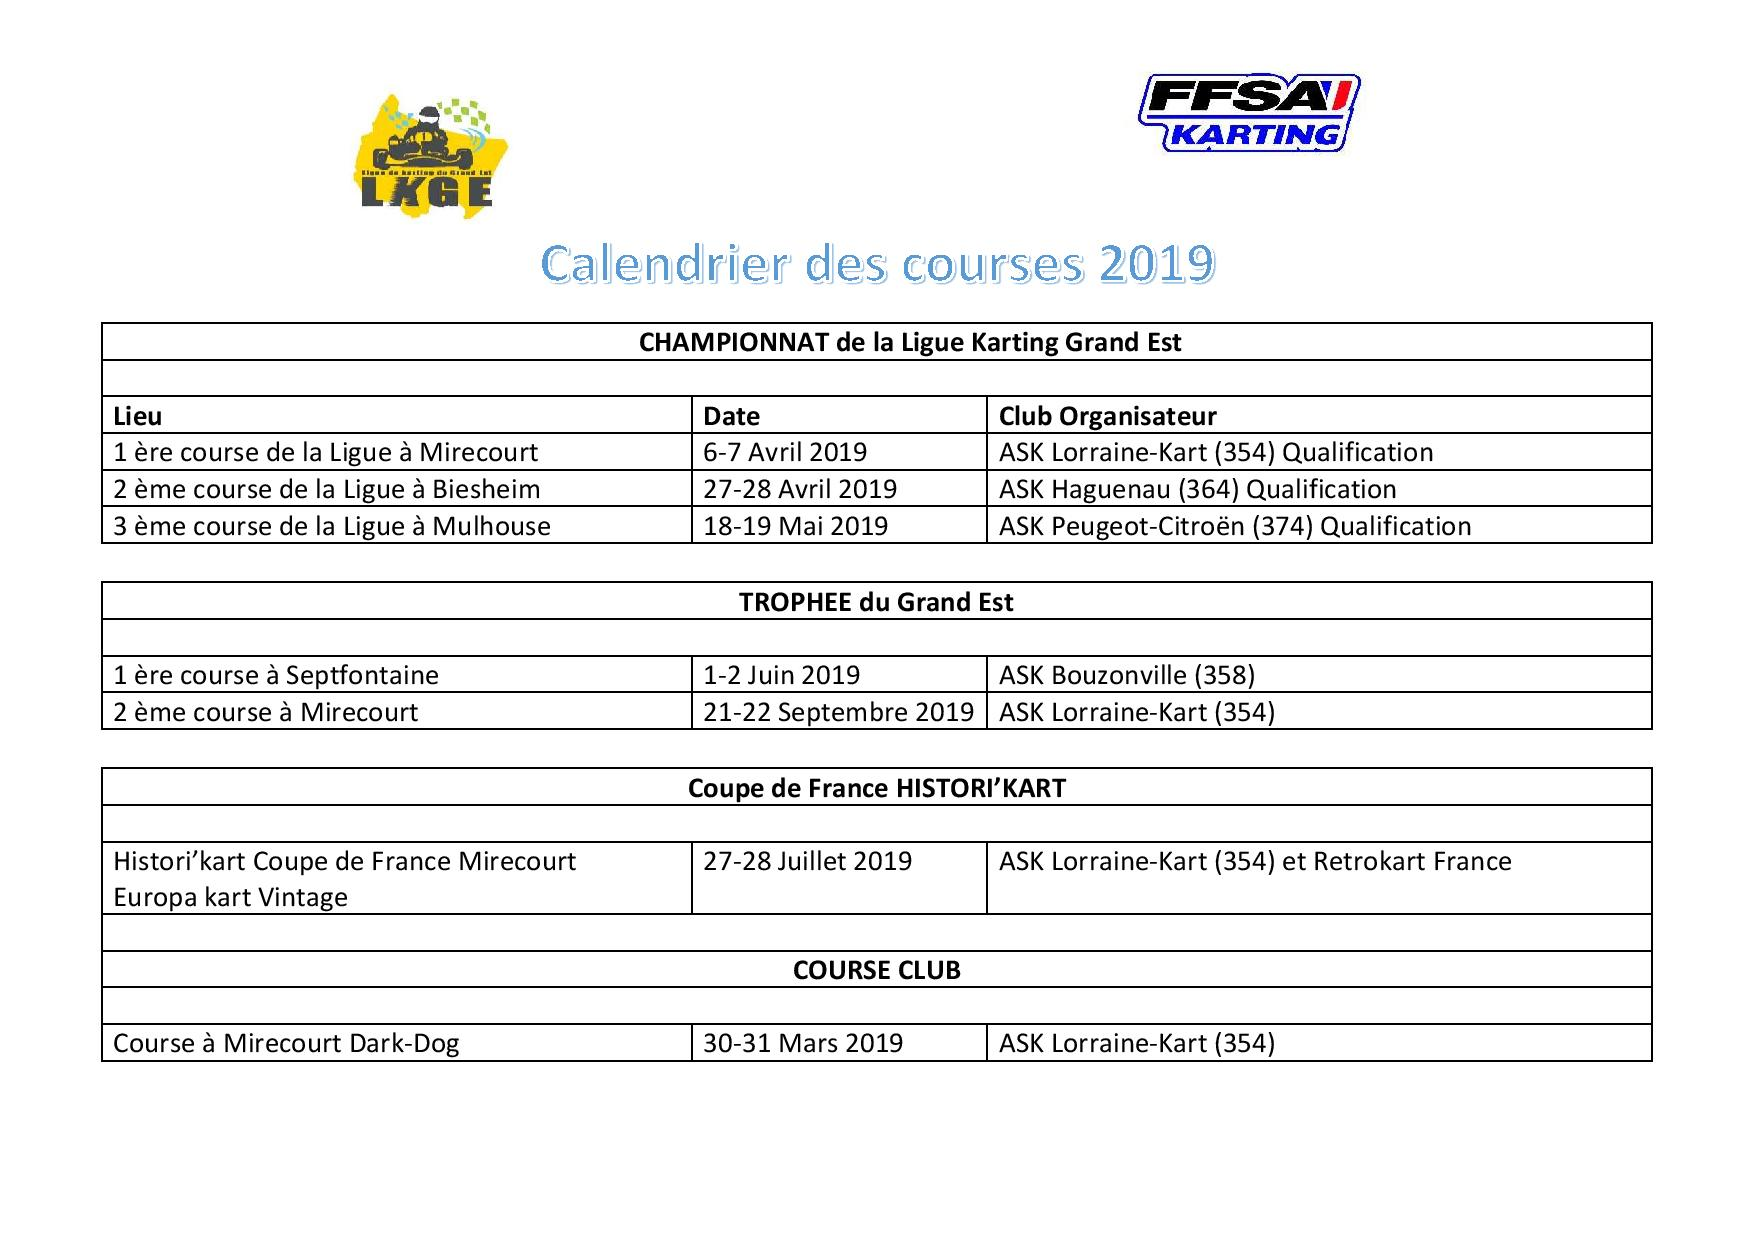 Ligue karting ge calendrier courses page 2